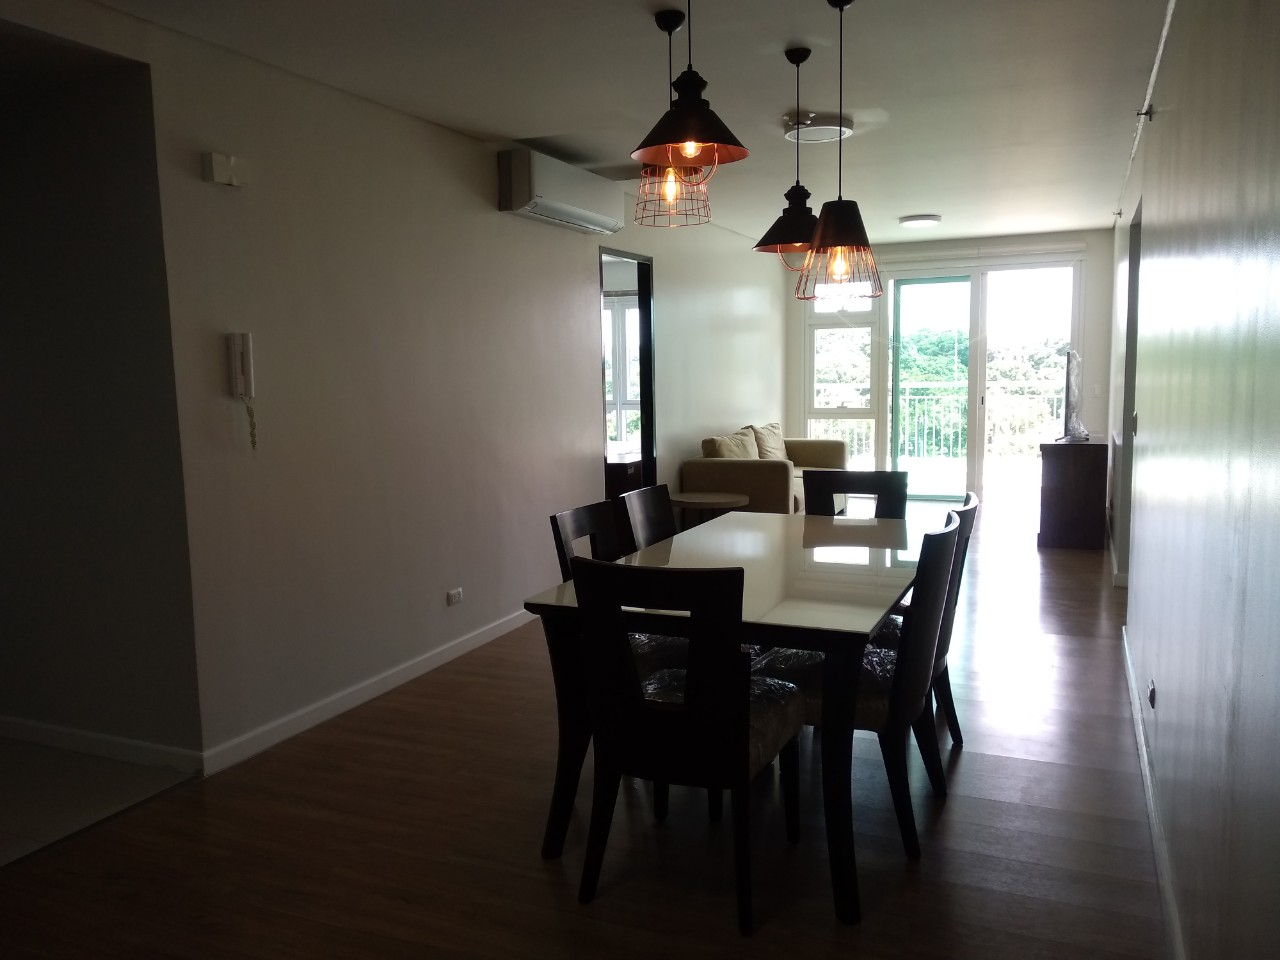 3BR Condo For Lease, The Sequoia at Two Serendra 5